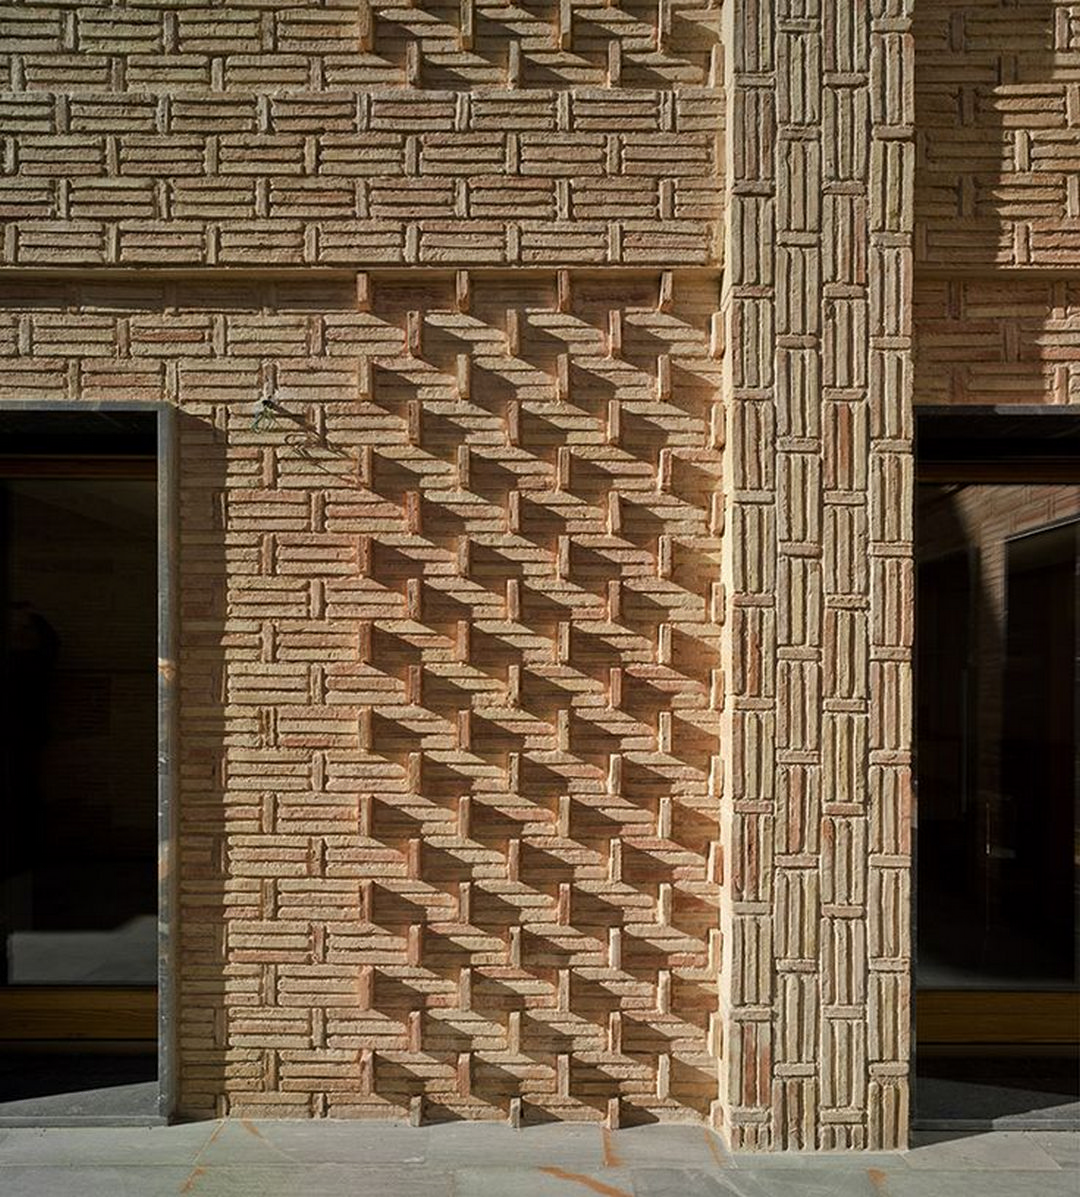 Stunning Brick Architecture Inspirations (105 Photos